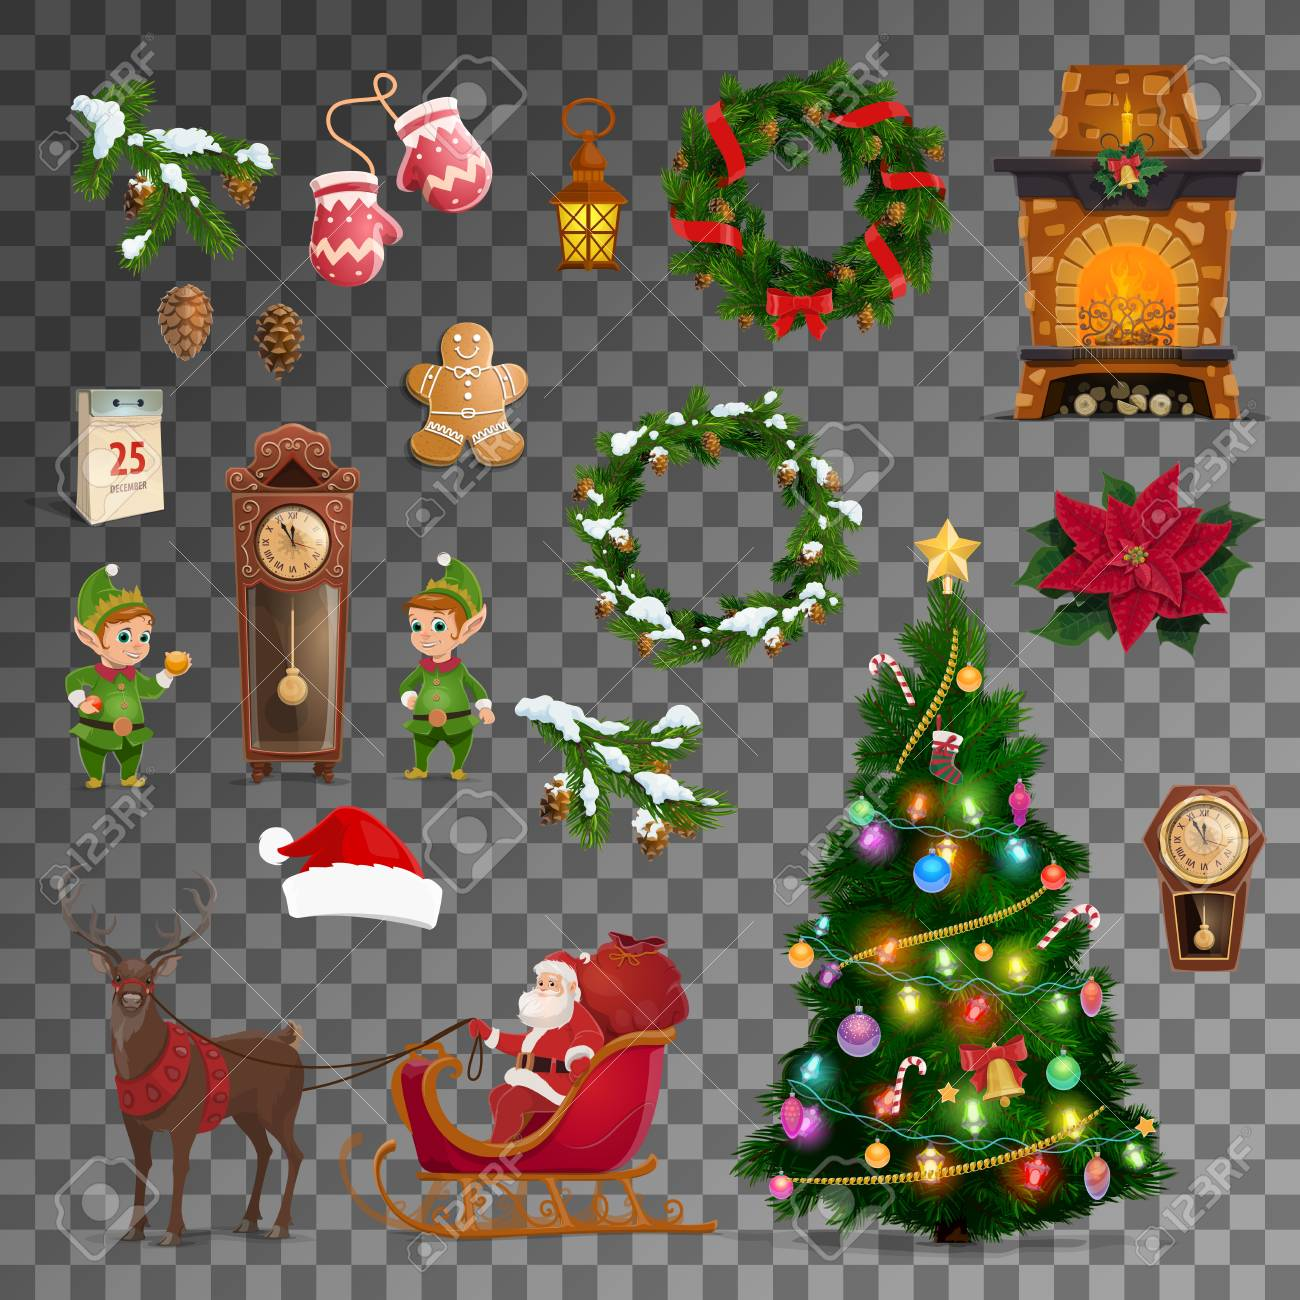 Christmas and New Year celebration vector symbols. Merry Xmas tree, Santa reindeer sleigh with gifts, gnome at eve clock and Christmas wreath, calendar and clock with fireplace, gingerbread cookie - 112448989